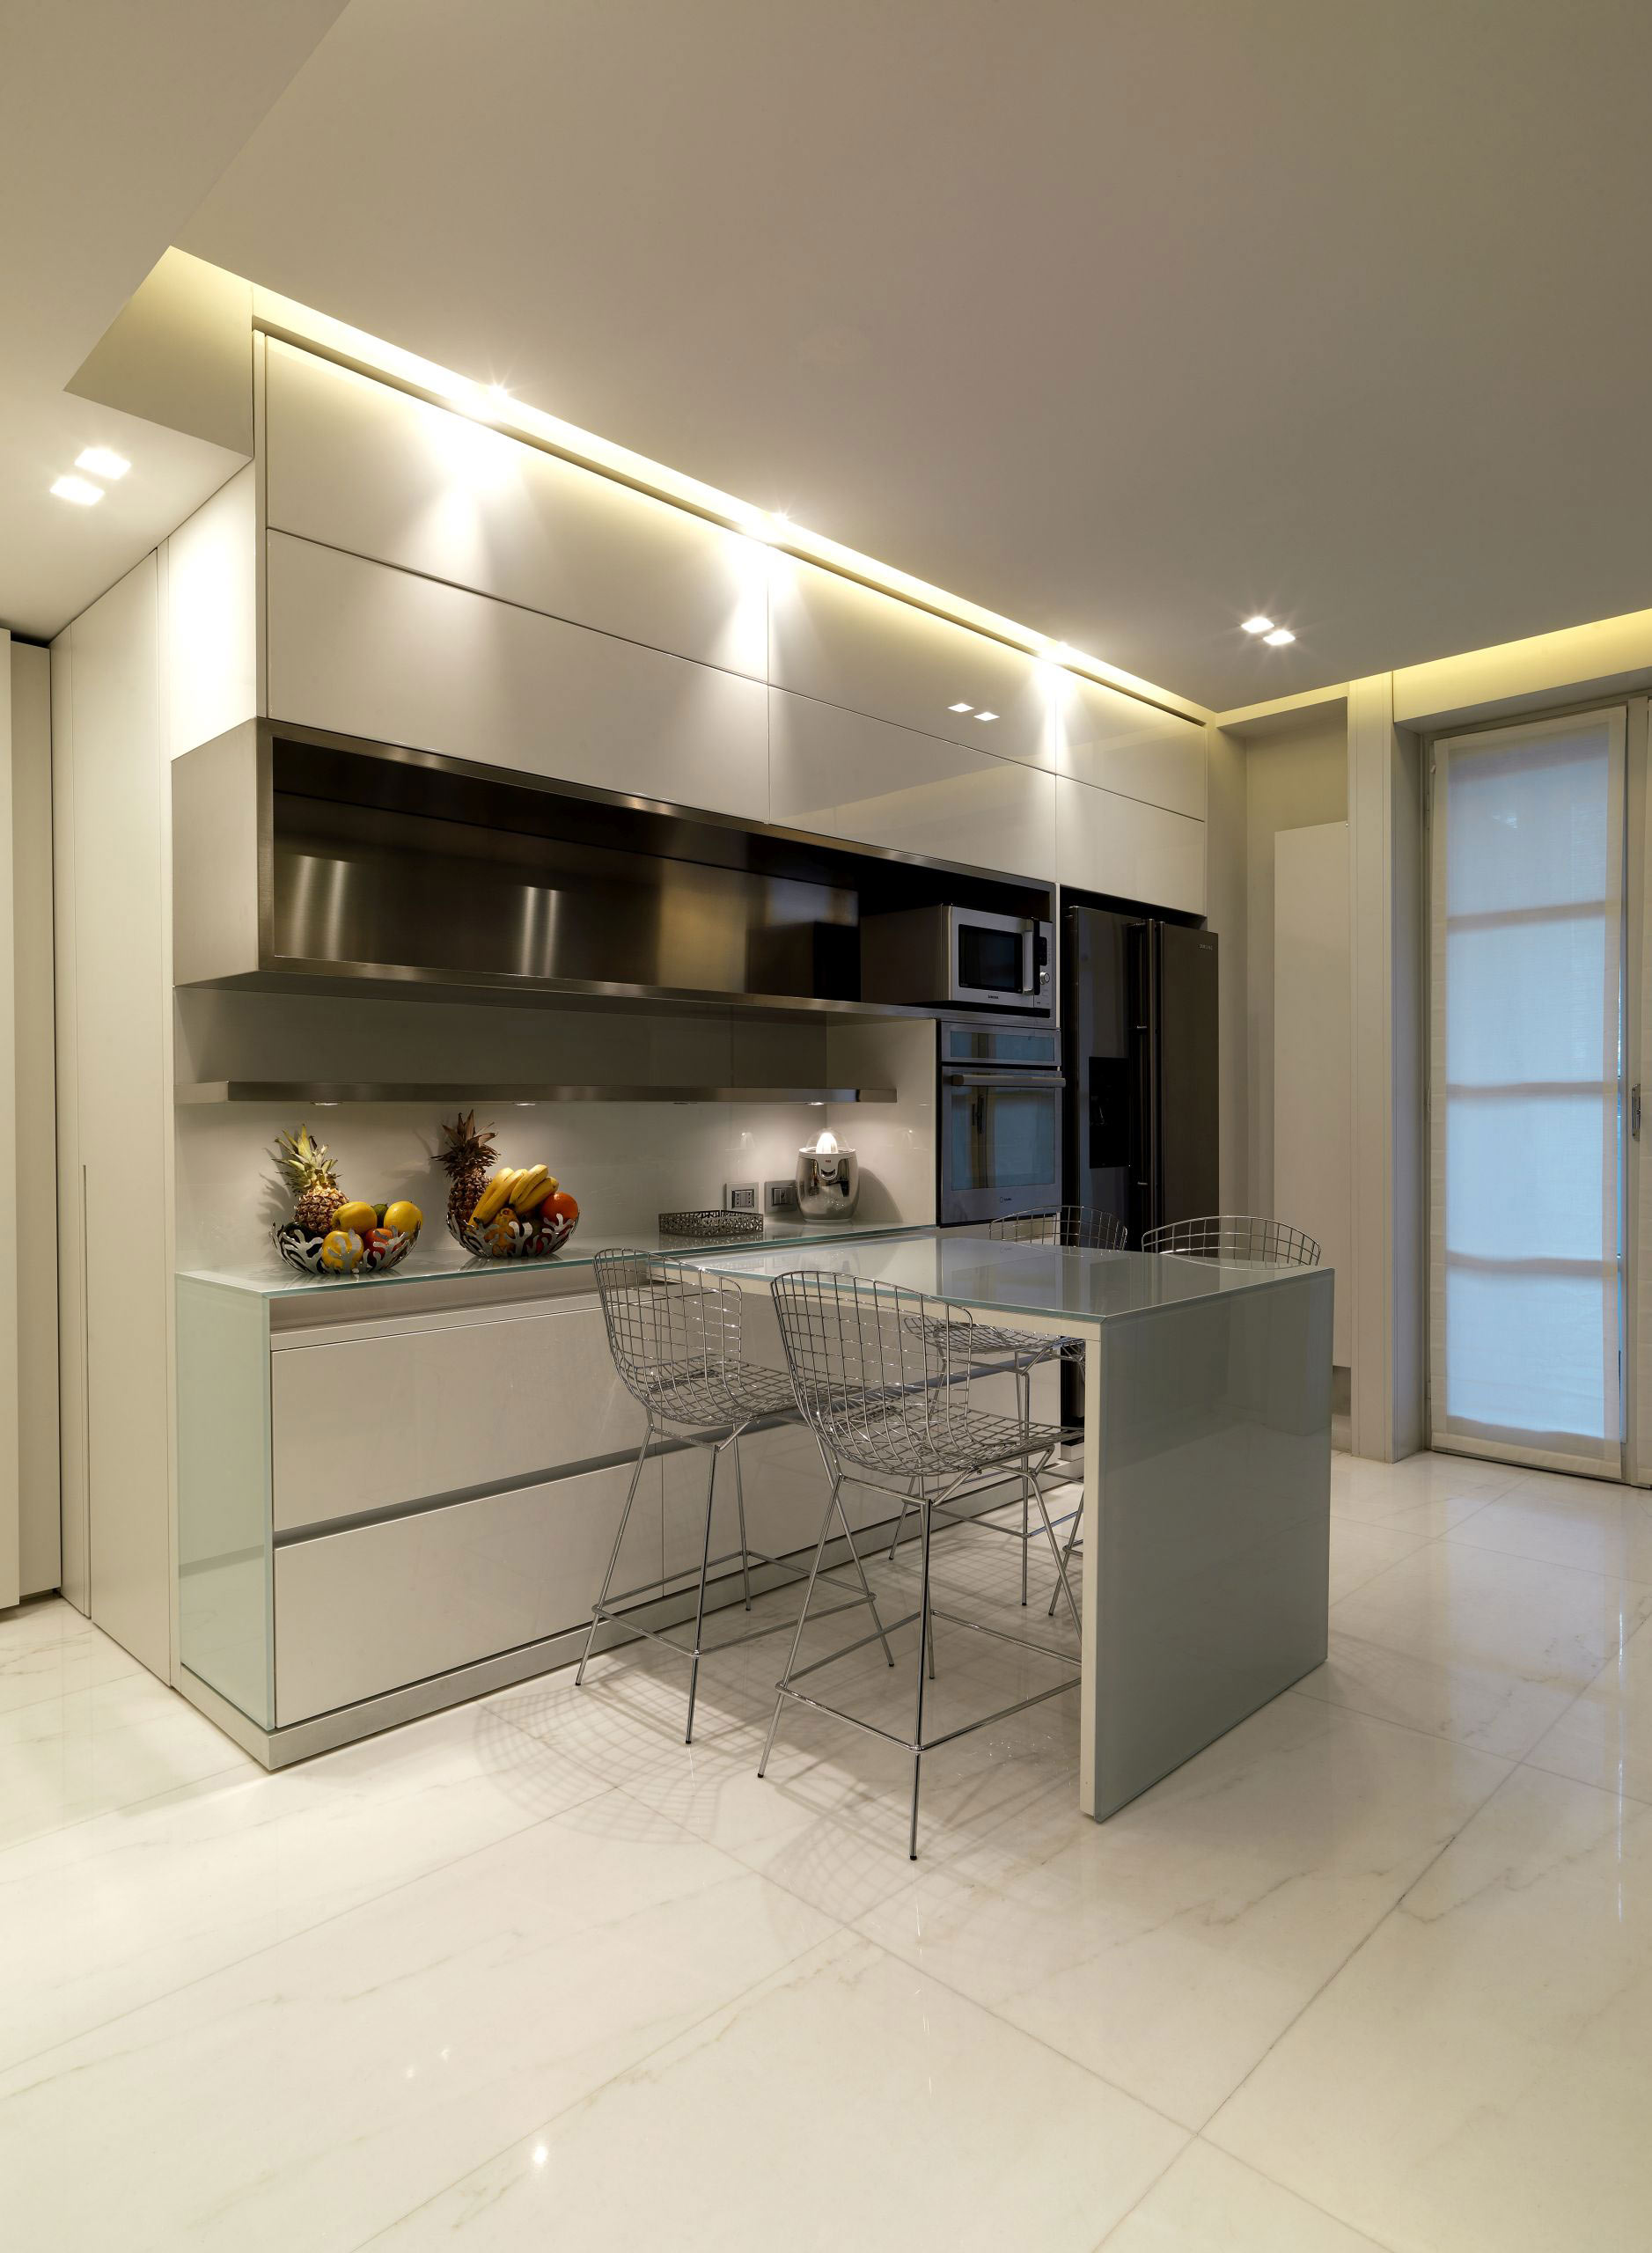 Bispoke minimalist kitchen by Pedini. French doors open onto the balcony at the back of the building.